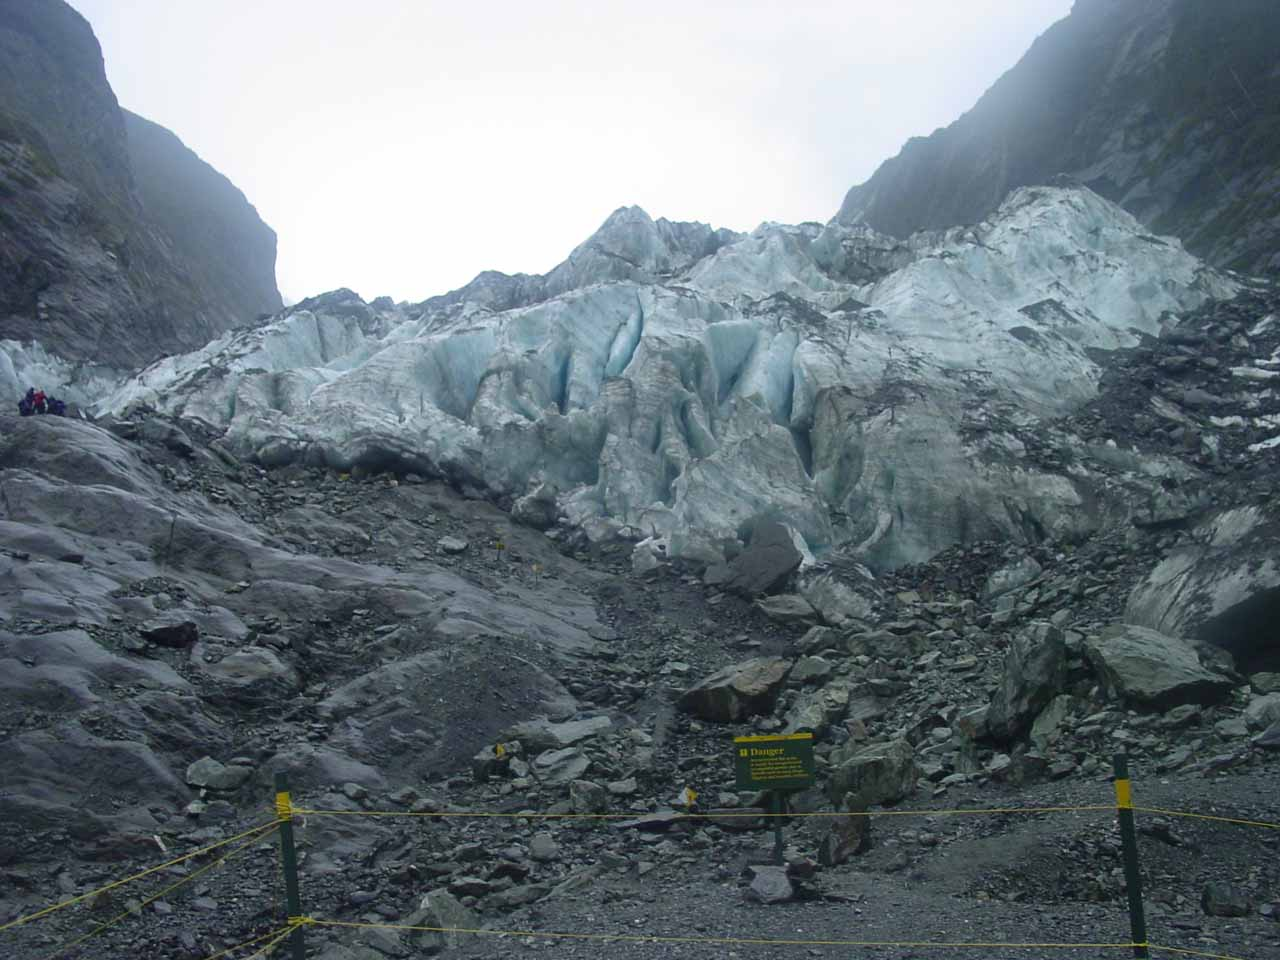 Right in front of the terminus of the Franz Josef Glacier